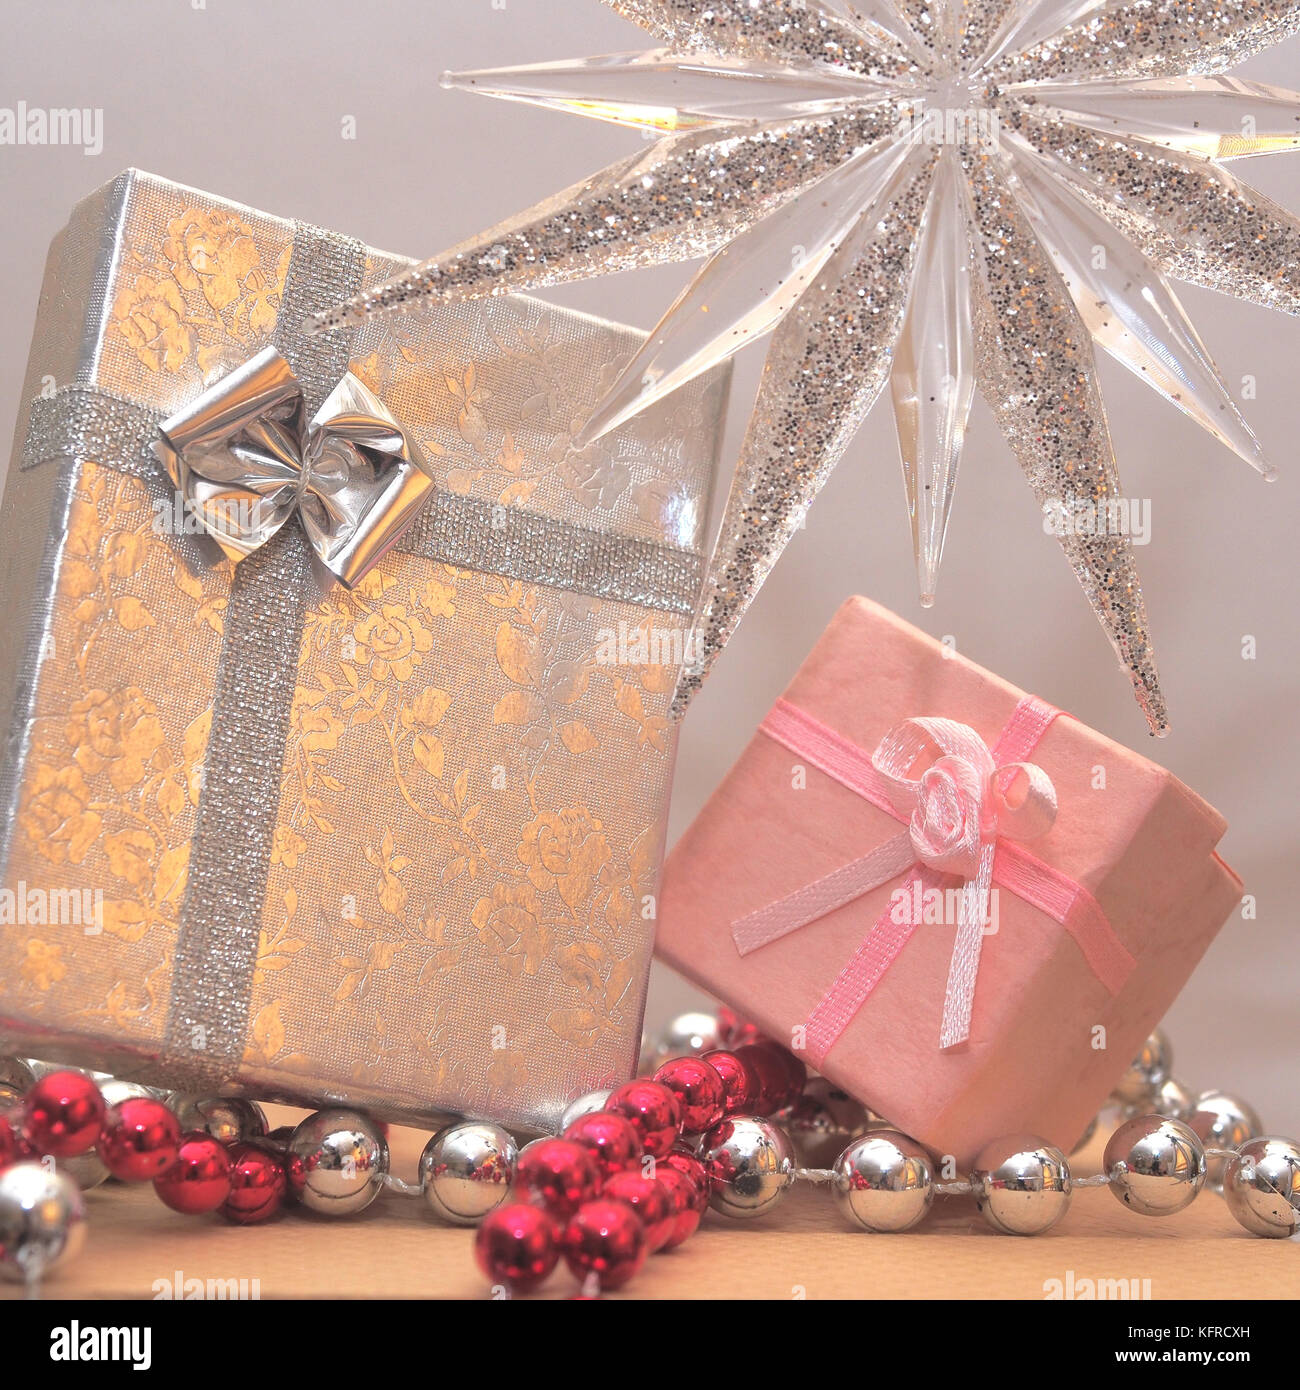 Photo of Christmas Gifts or Presents Wrapped - Gift Wrapped with Bow ...